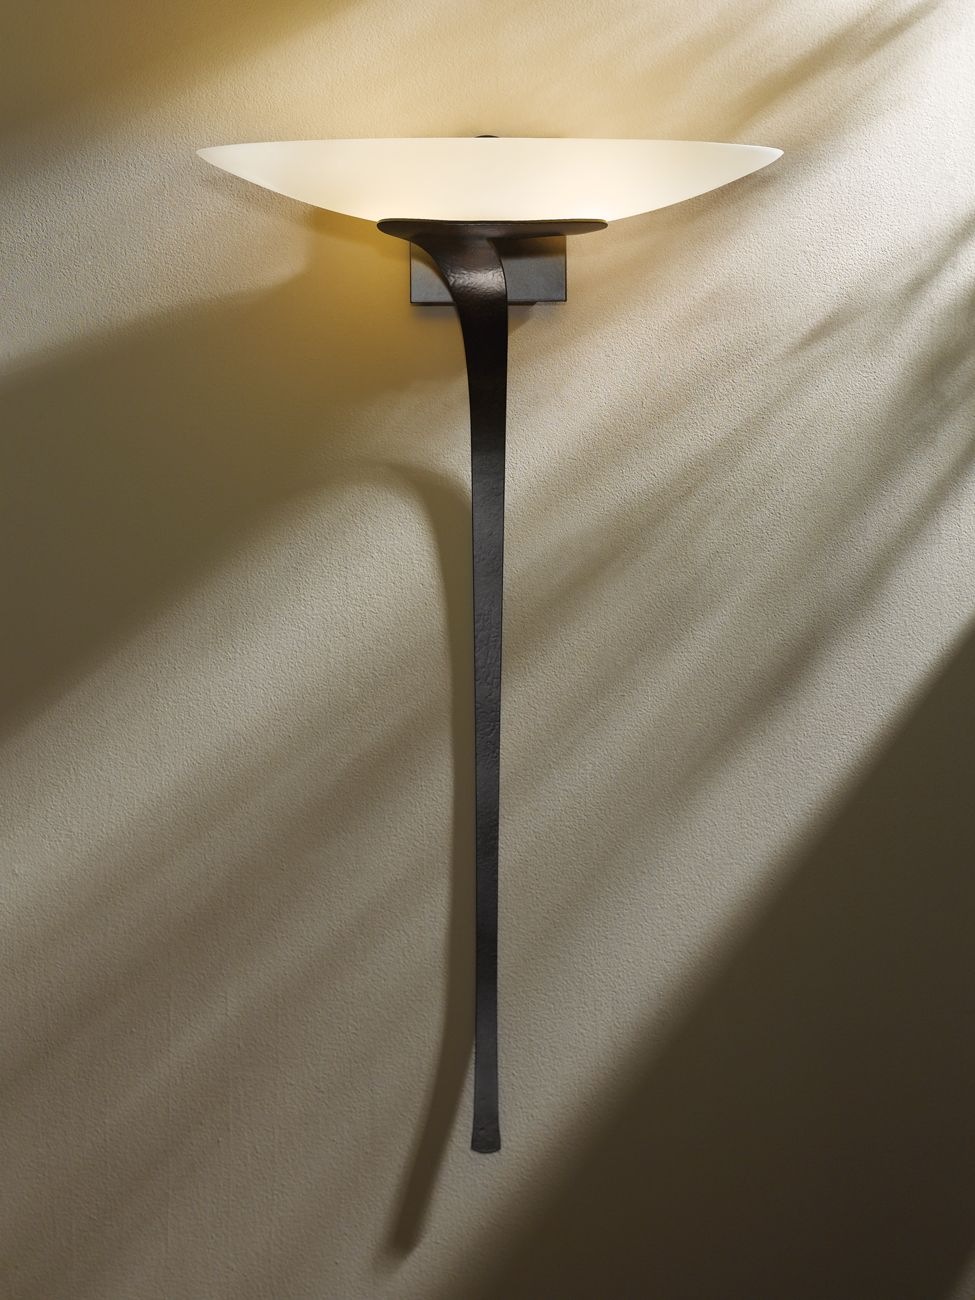 Hubbardton Forge Direct wire wall sconce with glass options: Antasia. Diffuser included.